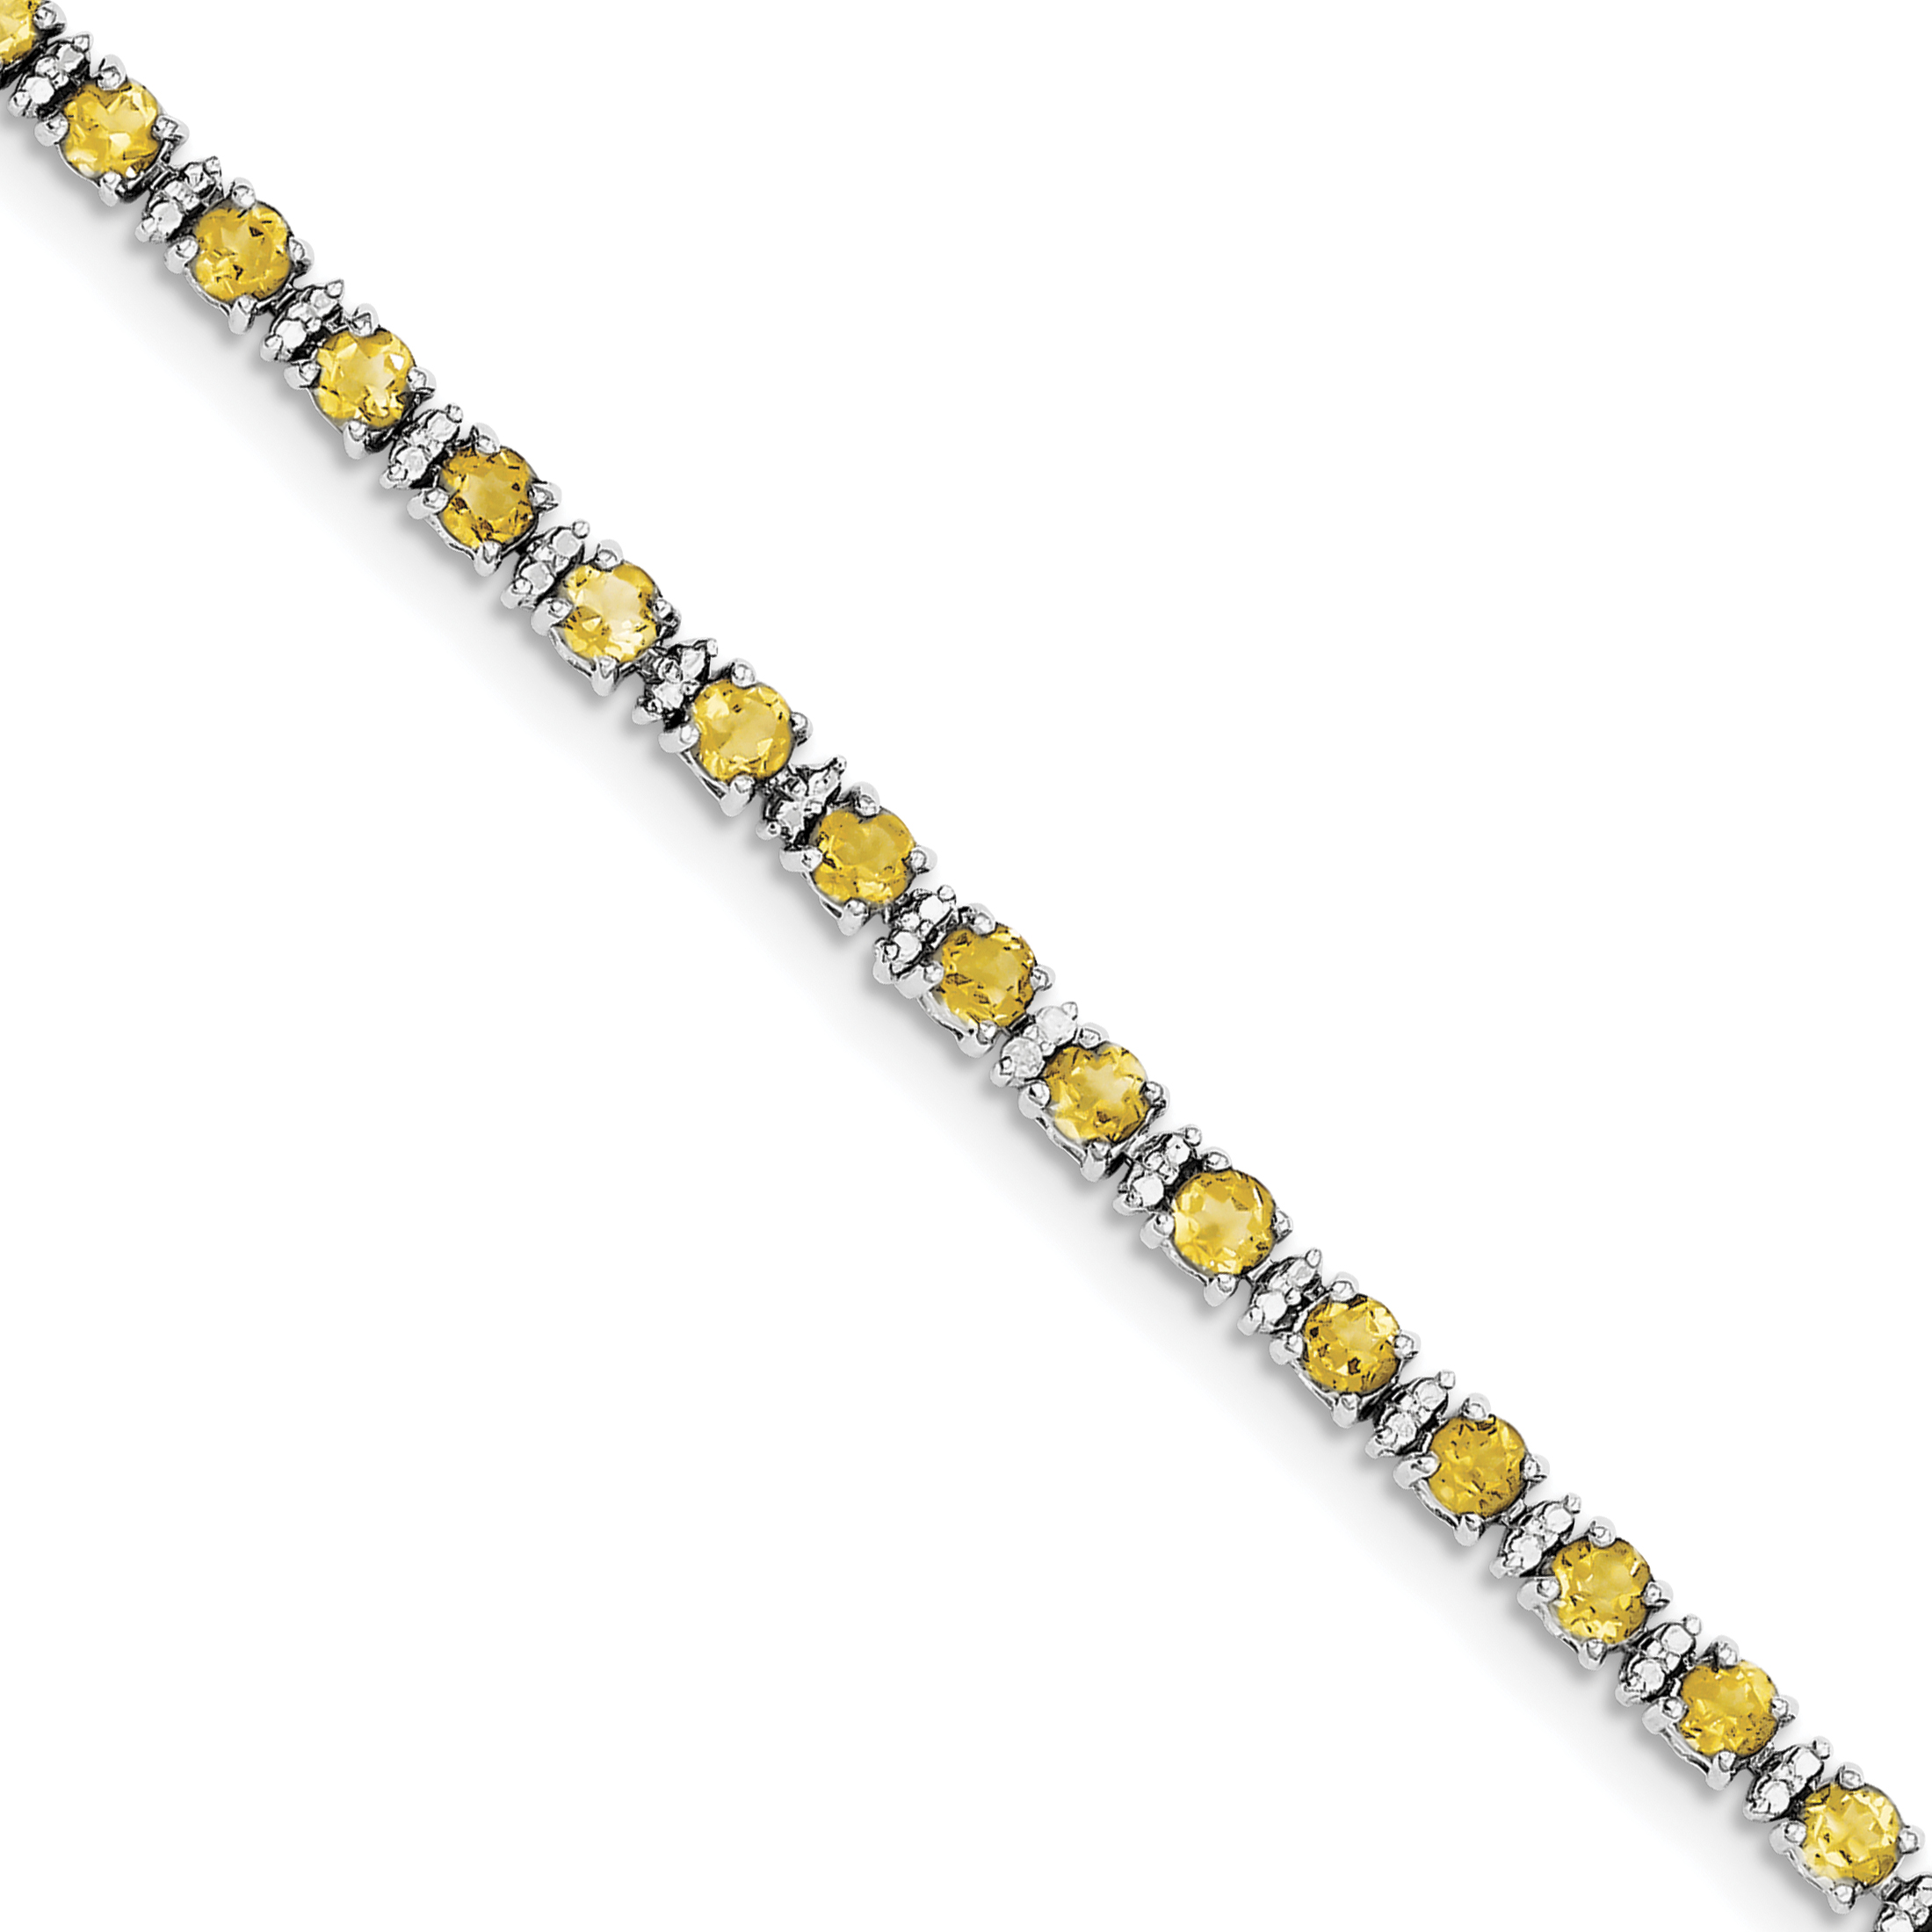 Roy Rose Jewelry Sterling Silver Citrine and Diamond Bracelet ~ Length 7'' inches by